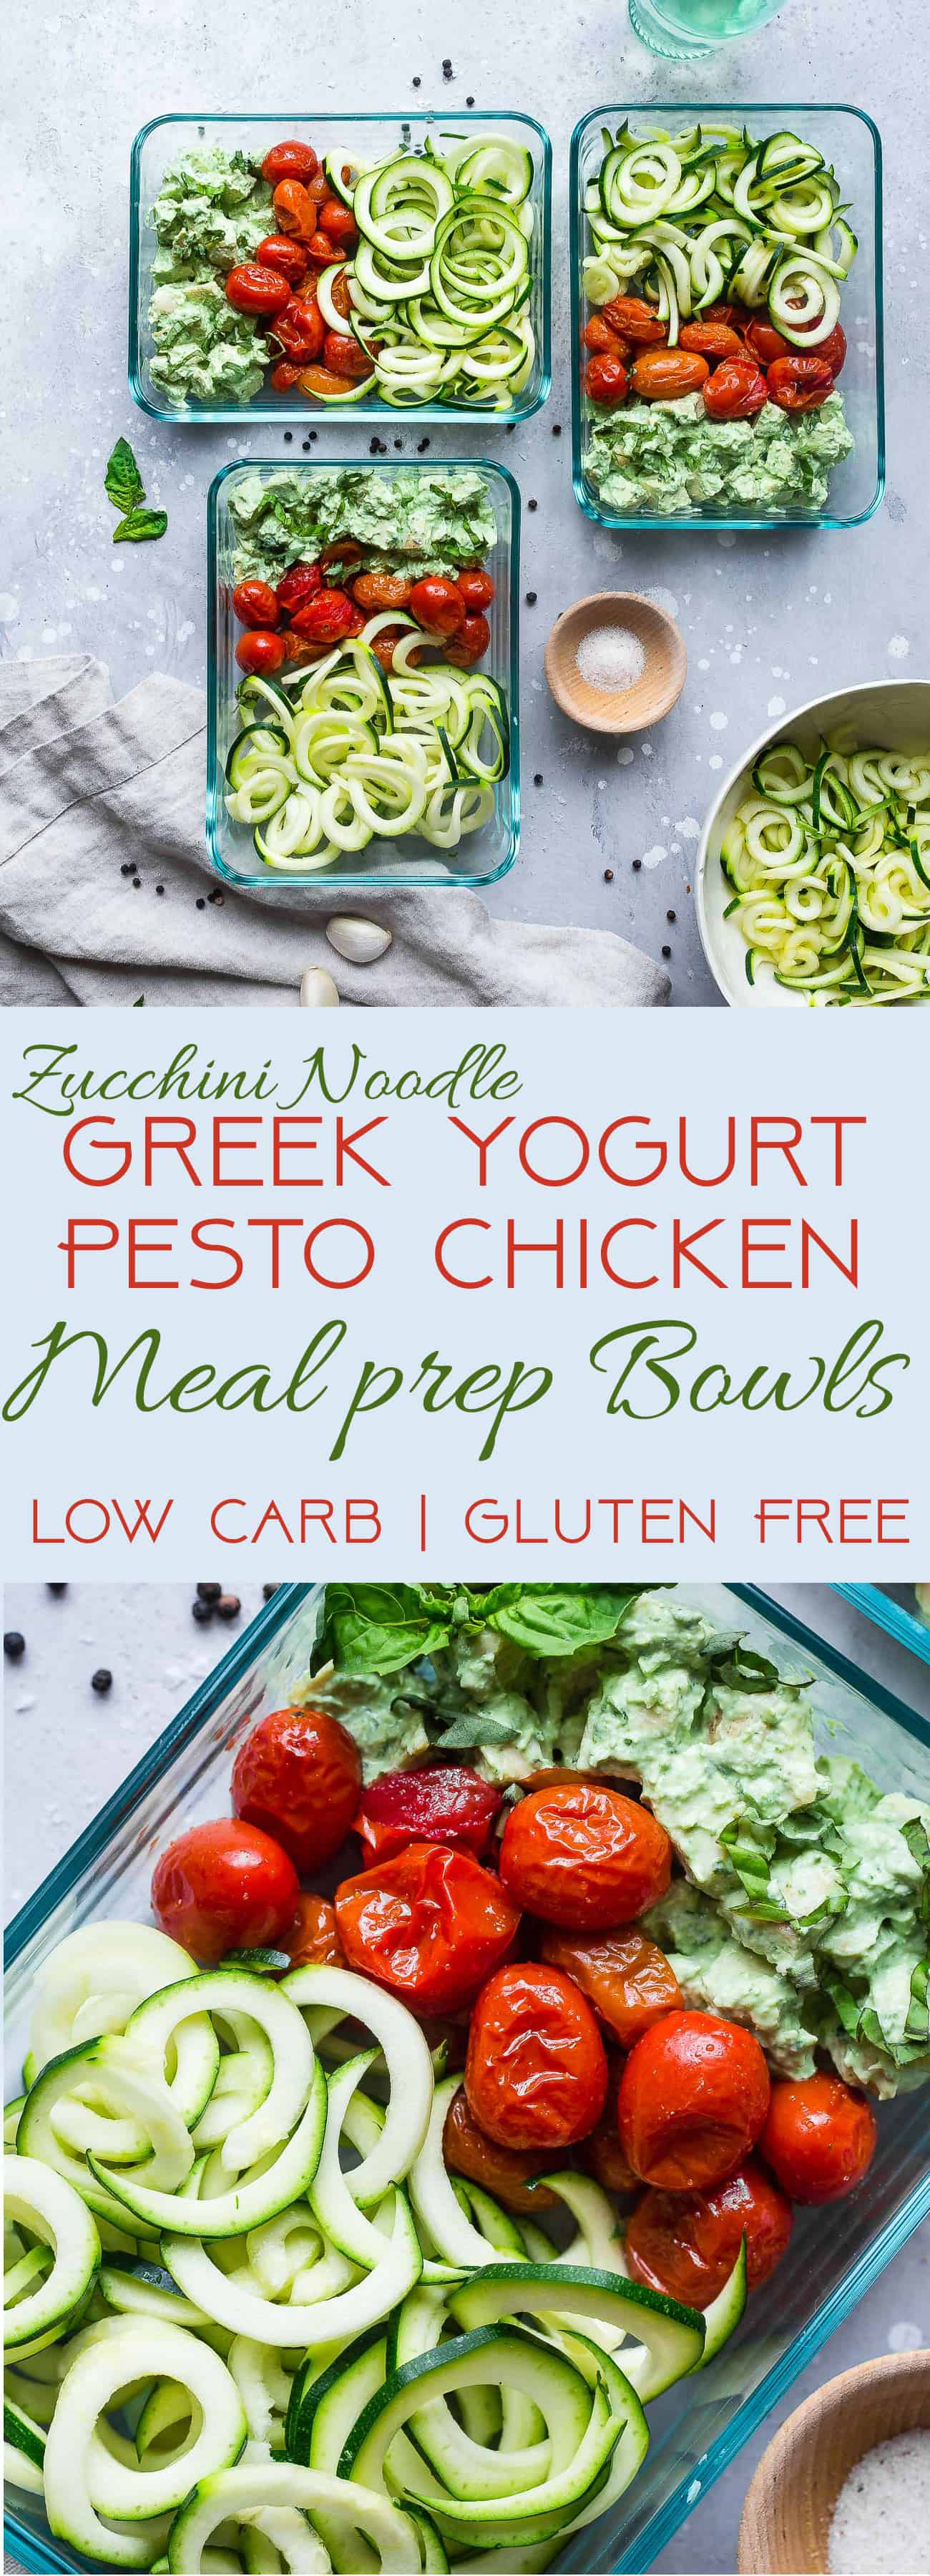 Greek Yogurt Pesto Chicken & Zucchini Noodle Meal prep Bowls - An easy, low carb, gluten free and protein packed work lunch! A healthy meal for kids or adults that's only 260 calories and 3 Freestyle points! | #Foodfaithfitness | #Lowcarb #glutenfree #healthy #mealprep #Greekyogurt